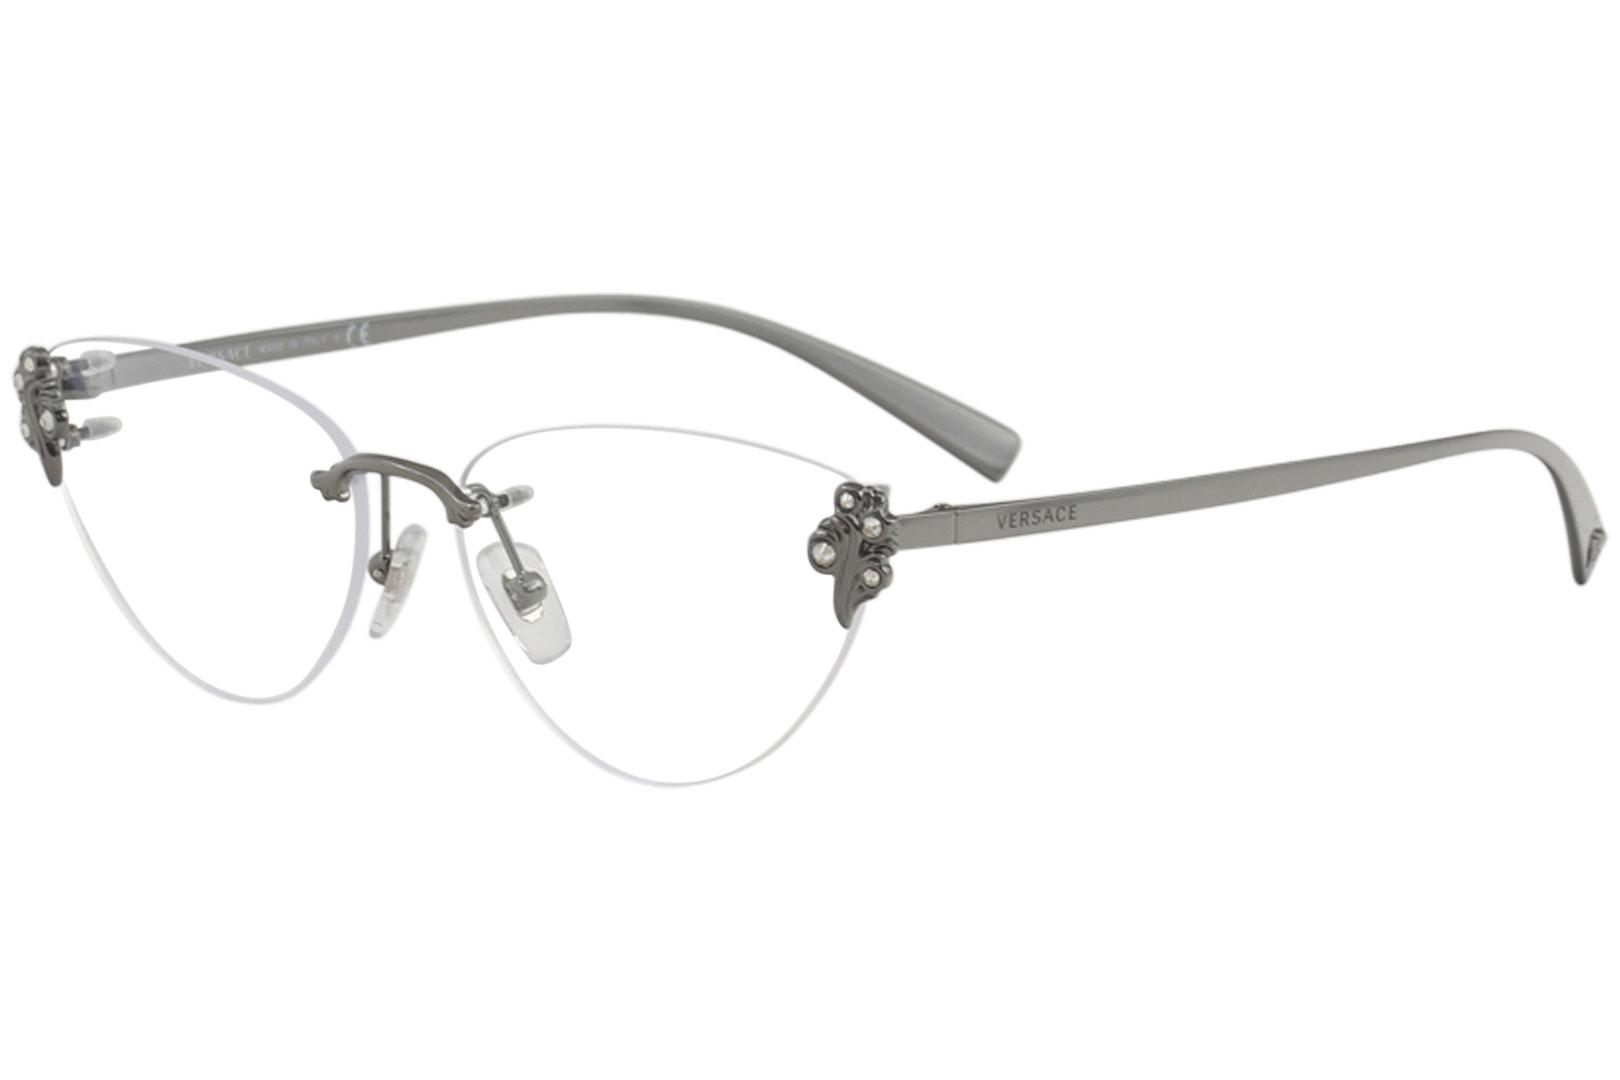 49f331cc430 Versace Women s Eyeglasses VE1254B VE 1254 B Rimless Optical Frame